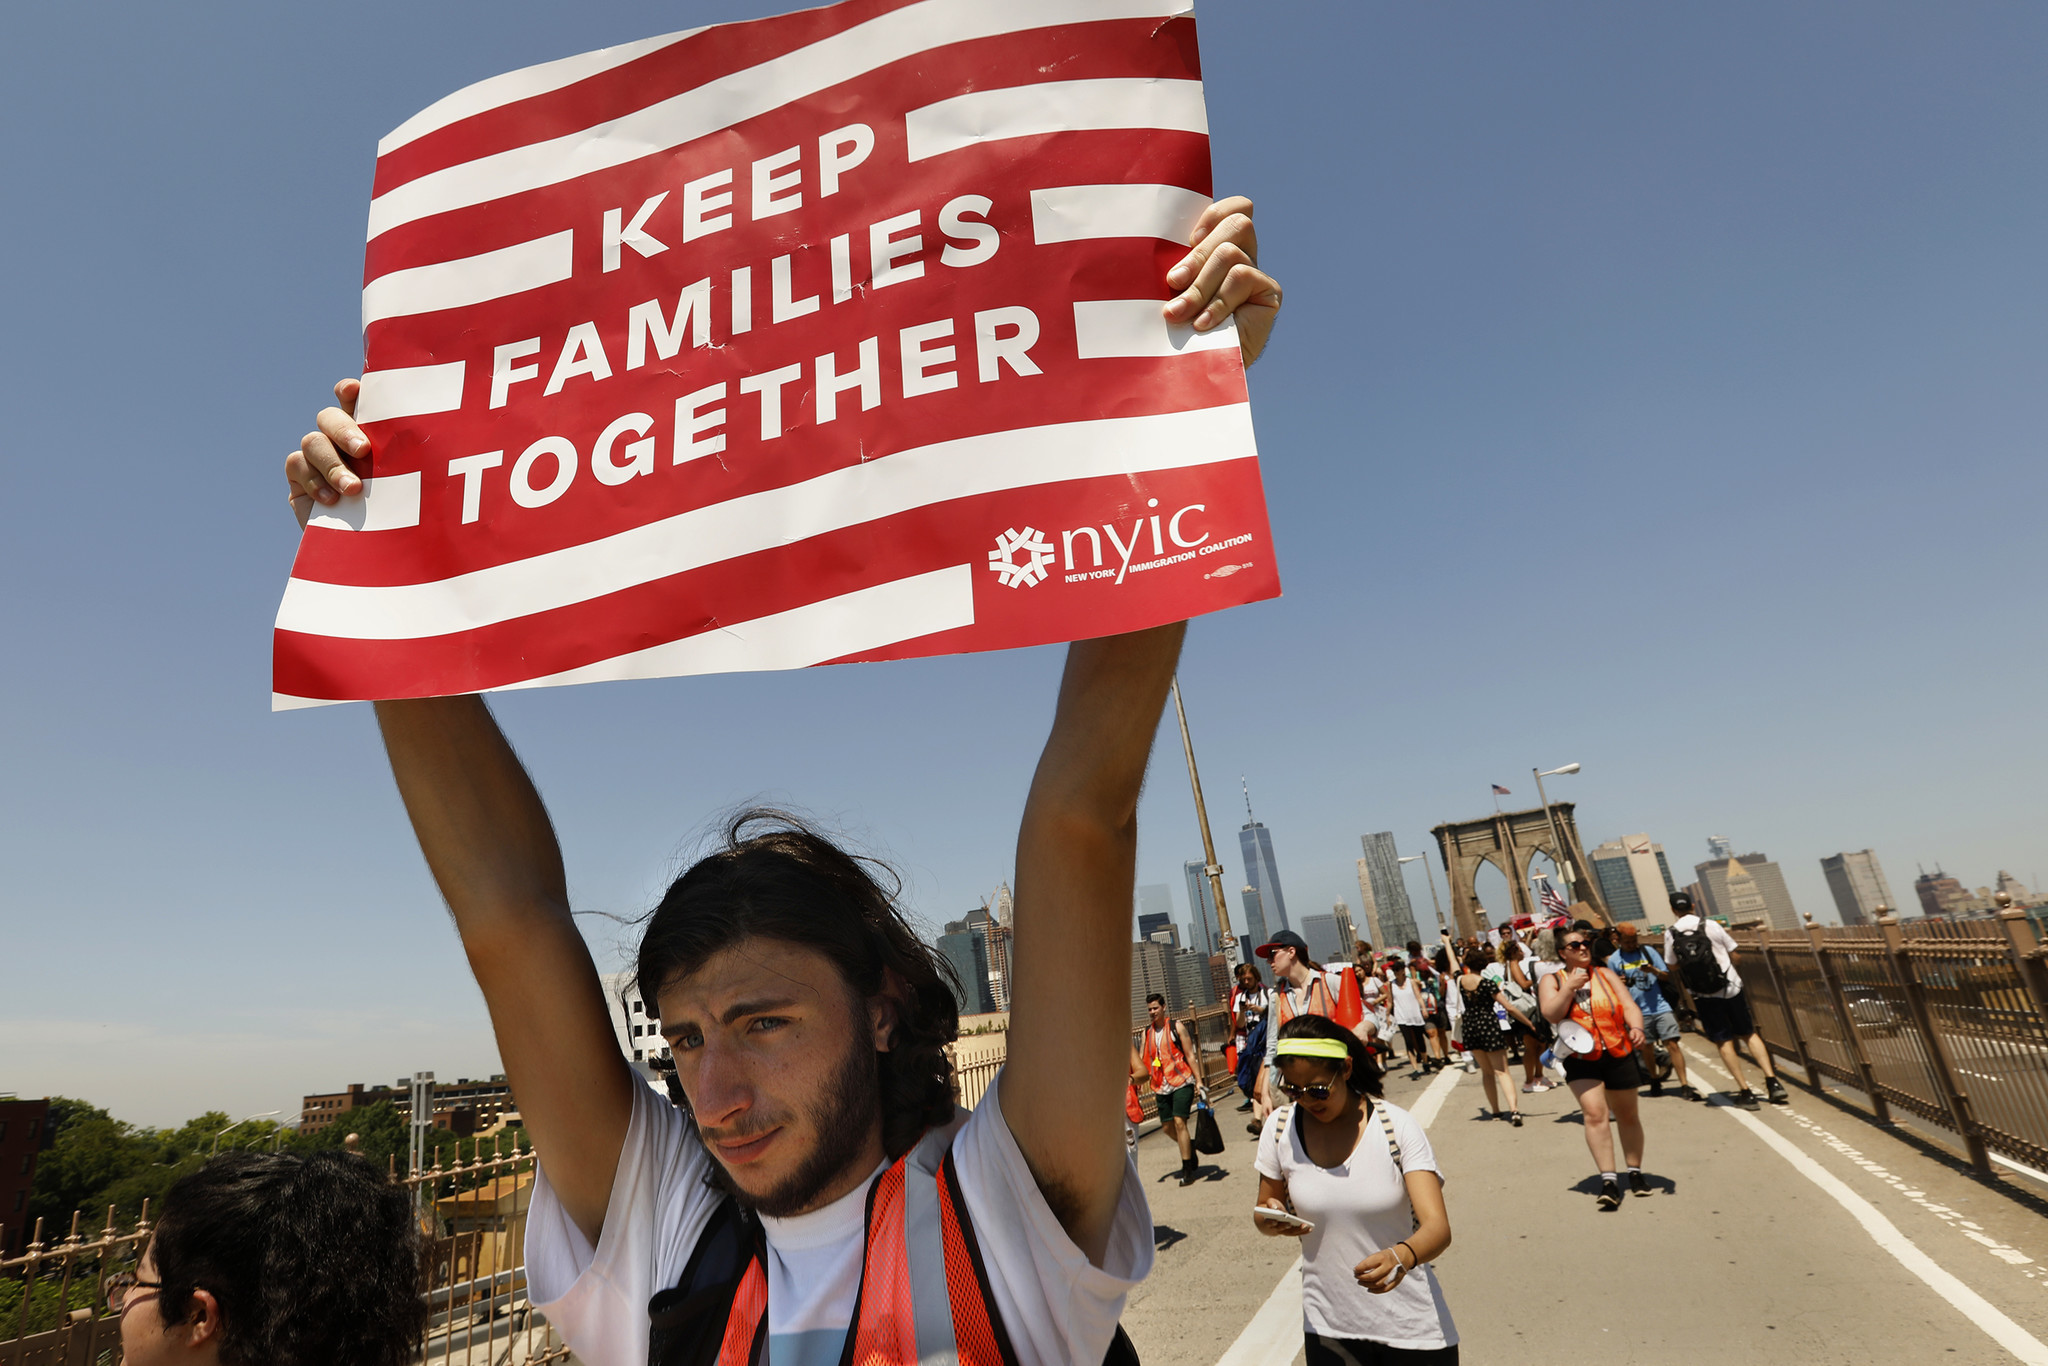 """NEW YORK: Ariel Schwartz, 19, of Long Island, takes part in a march to keep families together. """"I'm sick and tired of innocent families being treated like criminals,"""" Schwartz said. Carolyn Cole / Los Angeles Times"""